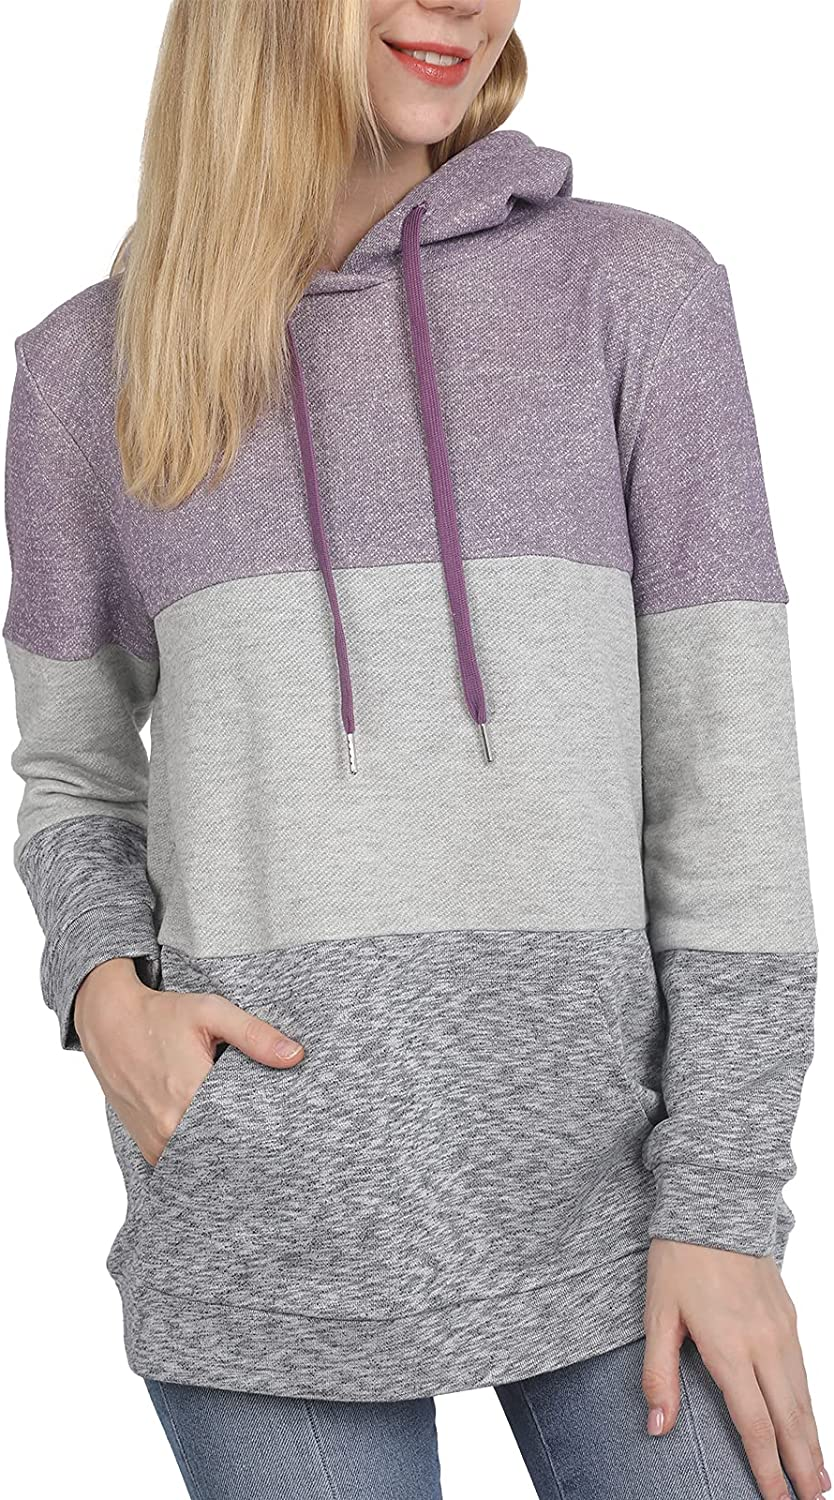 Women's Sweatshirt Hoodies Long Sleeve Colorblock Drawstring Loose Fit Casual Fall Winter Pullover Tunic Top with Pocket